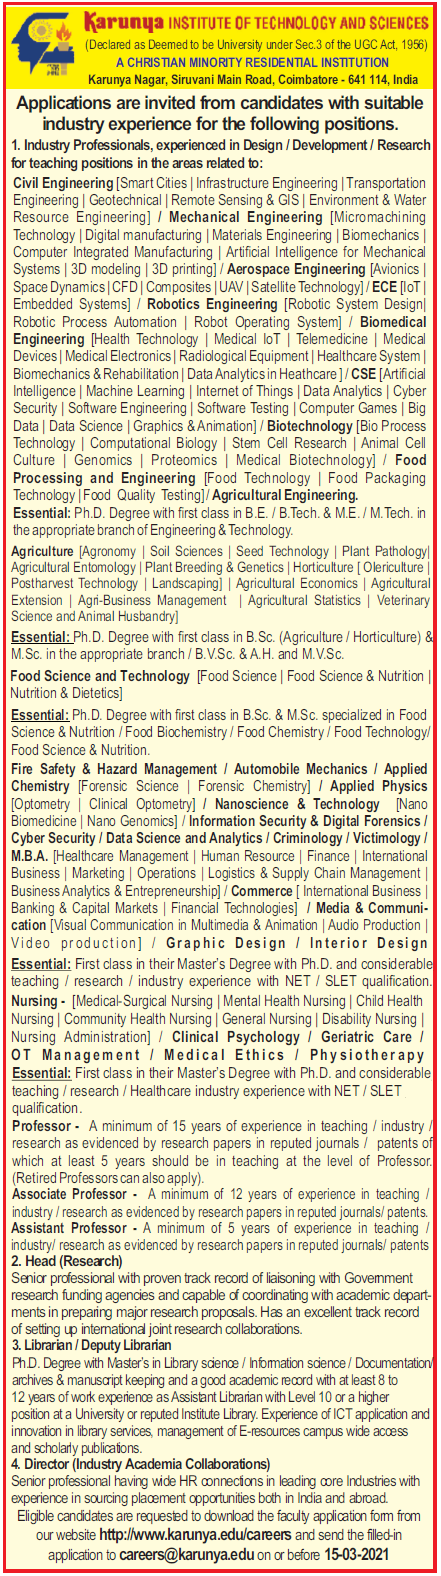 Karunya University Biotech/Life SciencesFaculty Jobs 2021